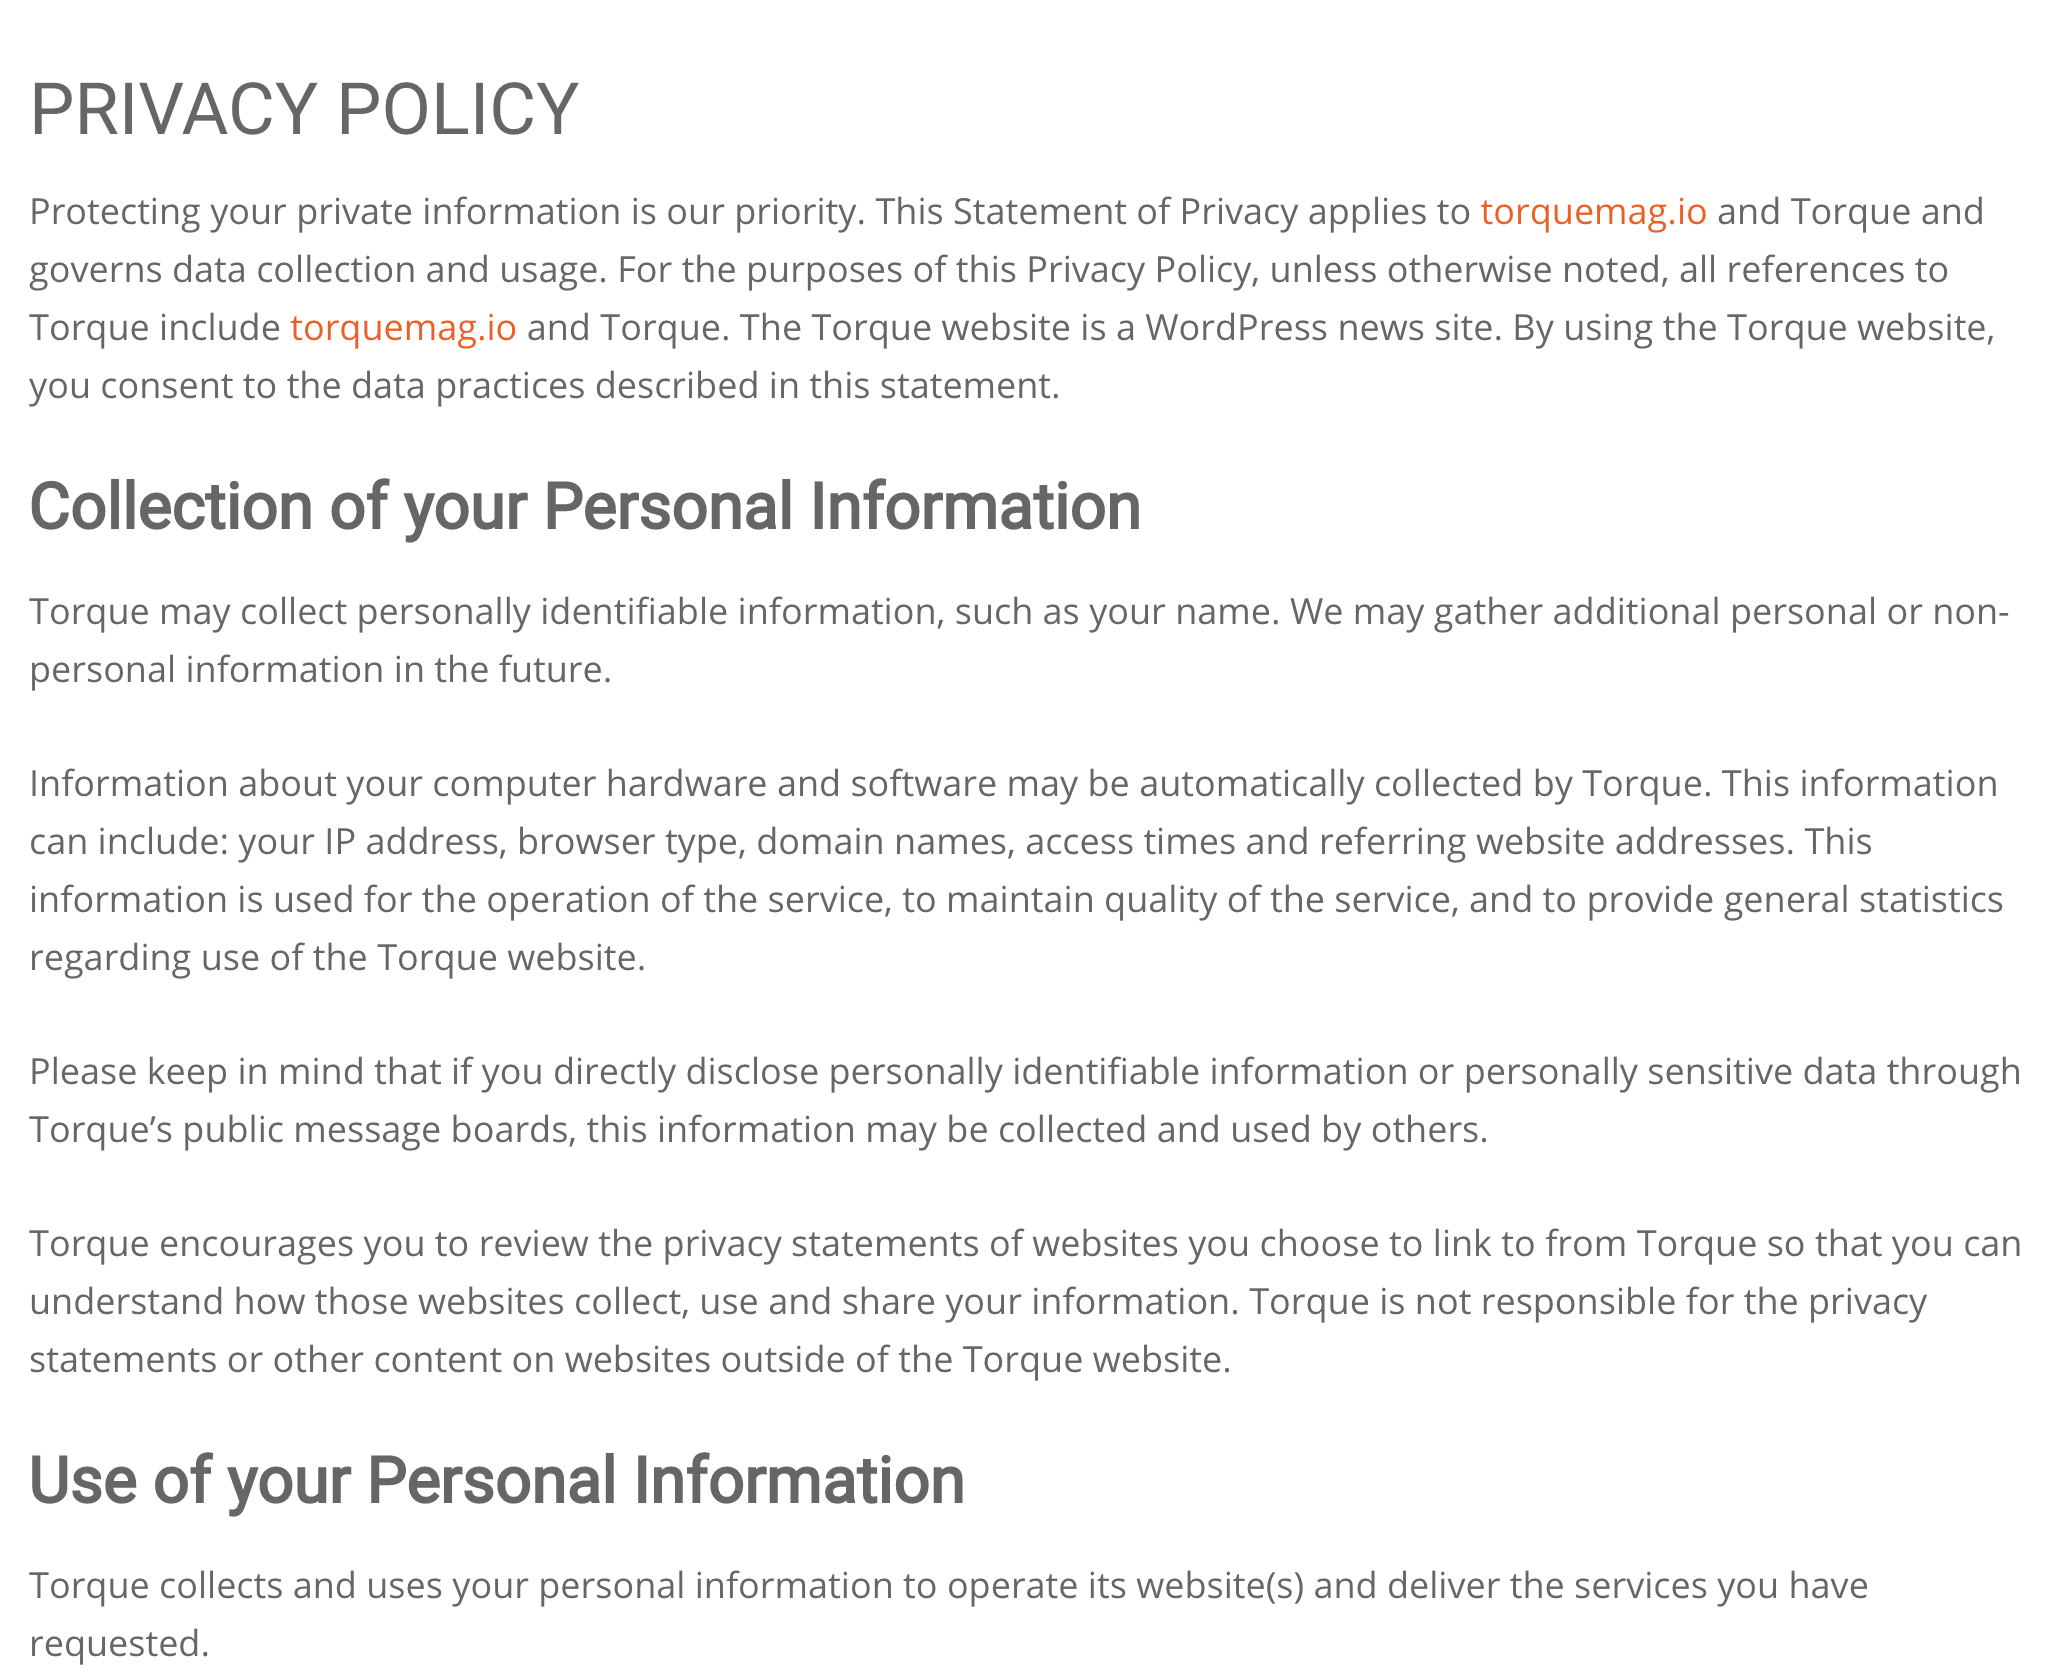 An example of Torque's privacy policy.